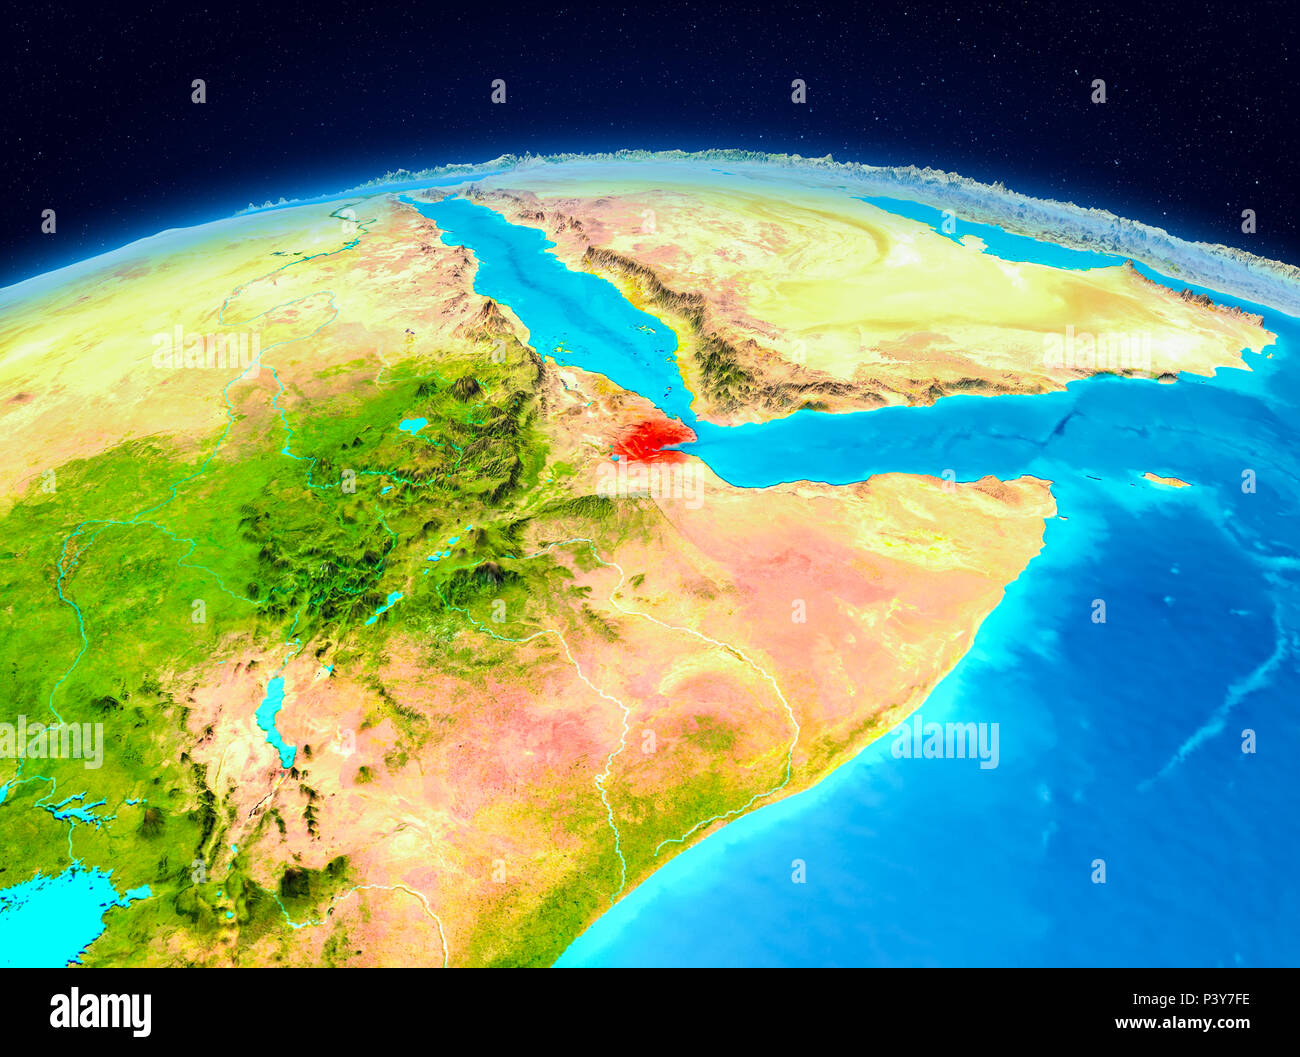 Satellite view of Djibouti highlighted in red on planet ... on topo map of djibouti, political map of djibouti, sports of djibouti, detailed map of djibouti, terrain map of djibouti, outline map of djibouti, blank map of djibouti, world map of djibouti, street map of djibouti, physical map of djibouti, topographical map of djibouti,